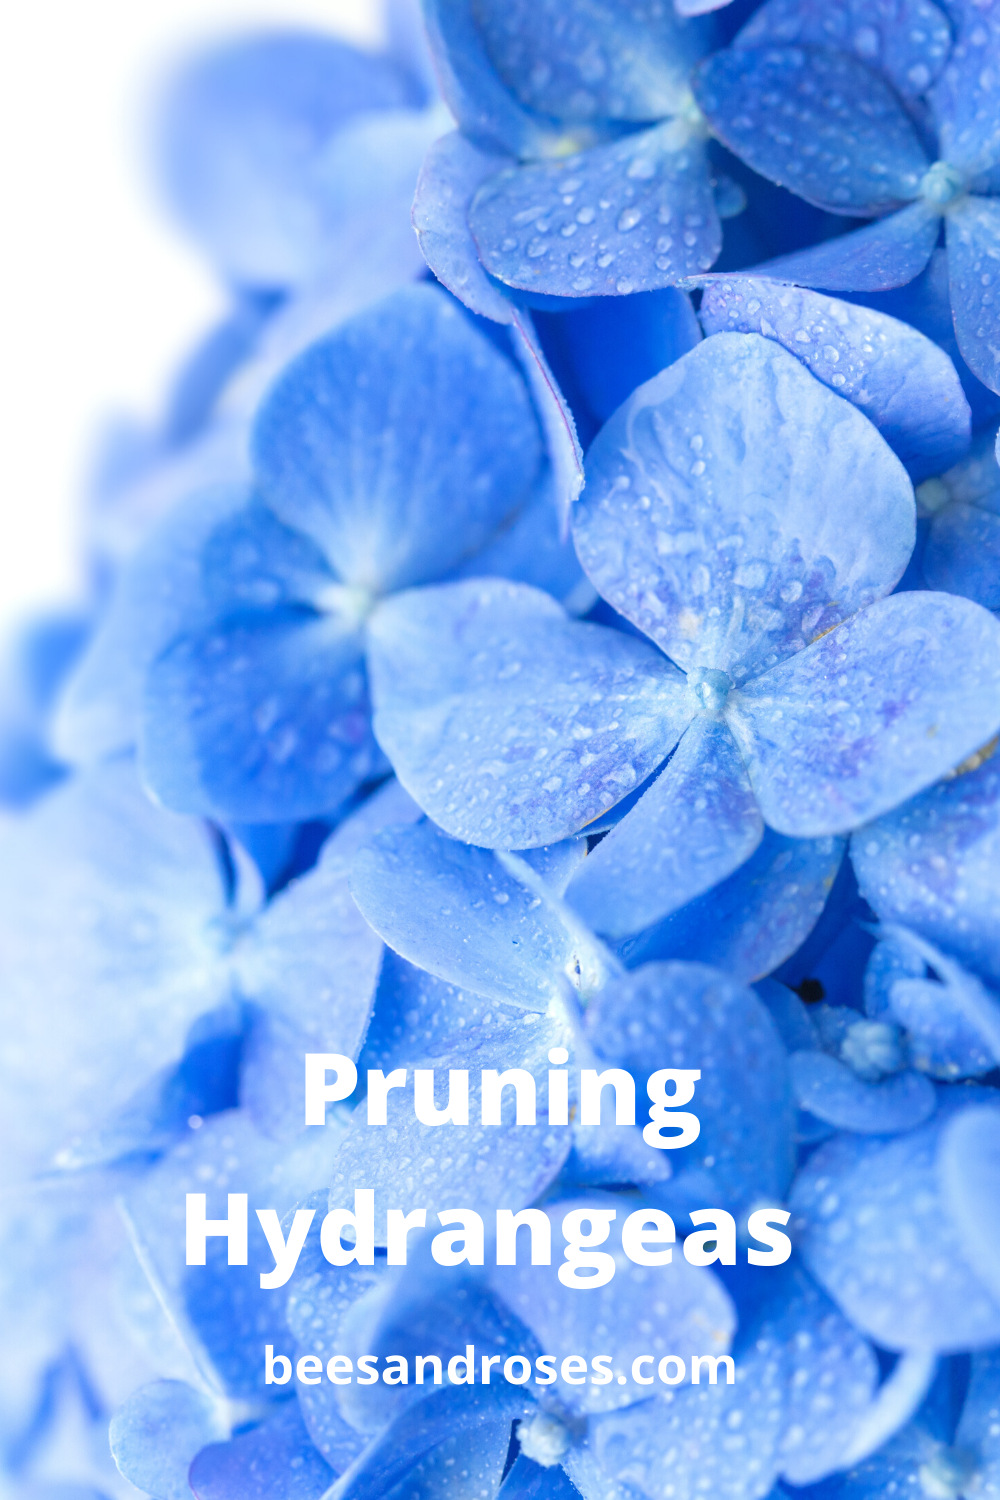 Hydrangeas have to be one of the most beautiful flowers EVER! Not just the shape and size, but the colors are breathtaking. If you want to learn how to manage them, read this post about pruning hydrangeas. Packed full of tips and tricks.#pruning #gardeningideas #hydrangeas